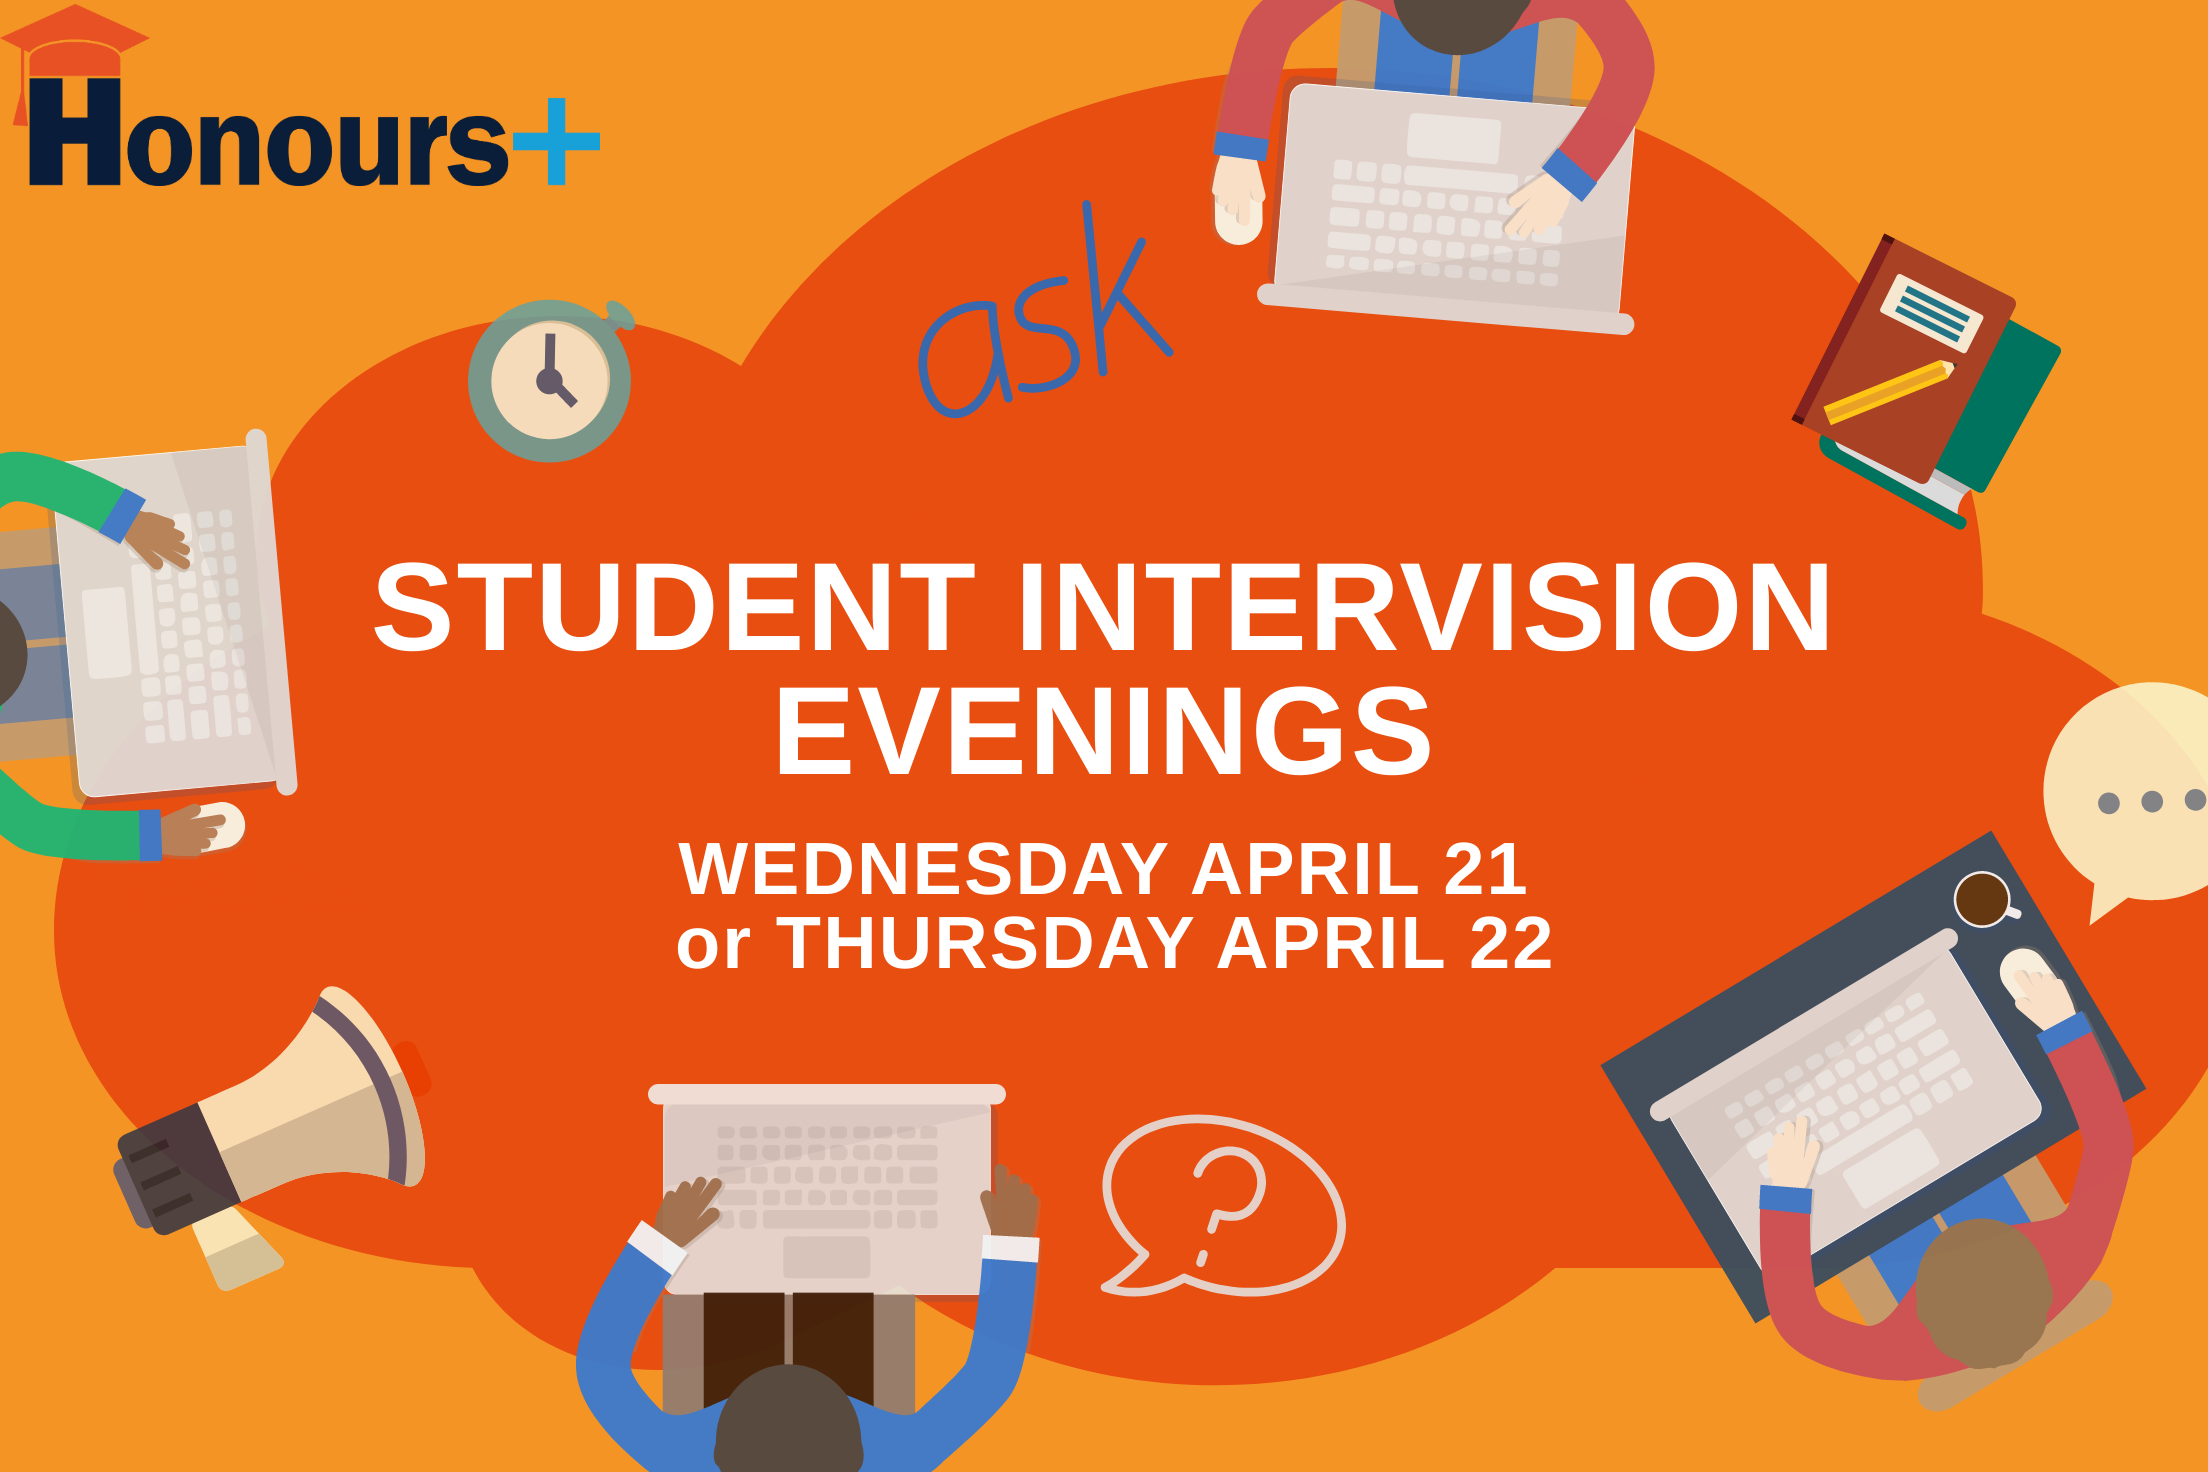 Student intervision evenings